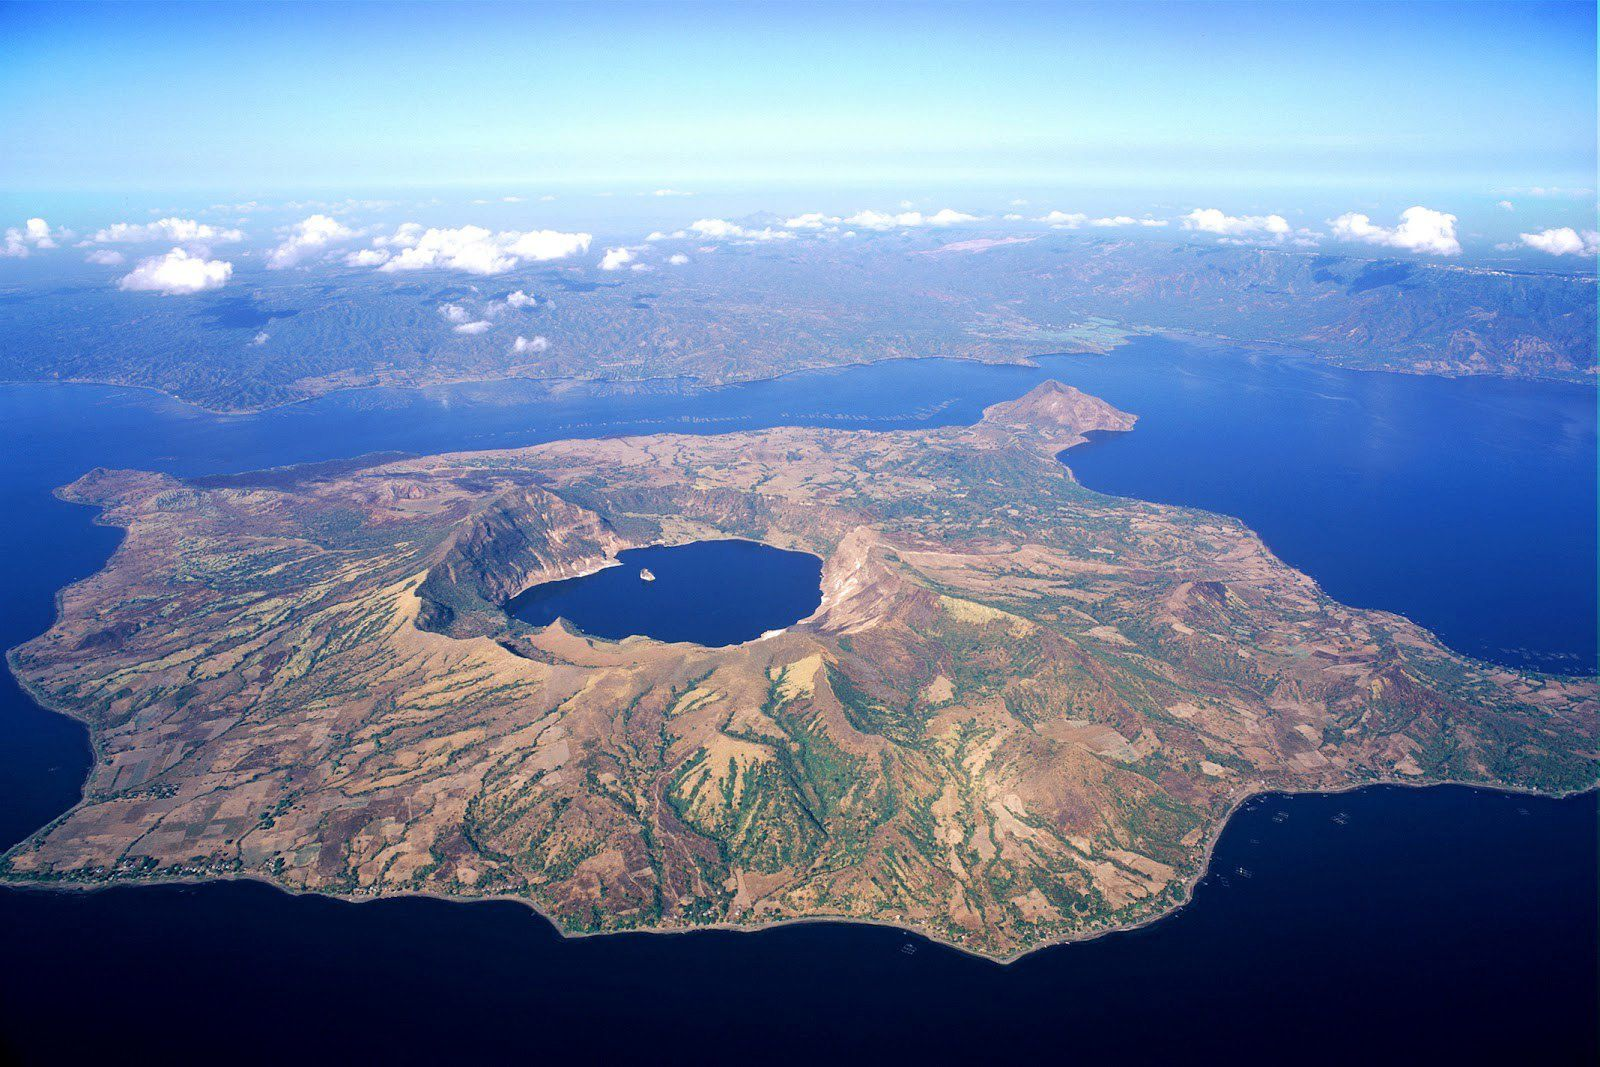 Le volcan Philippin Taal - photo Geologically.